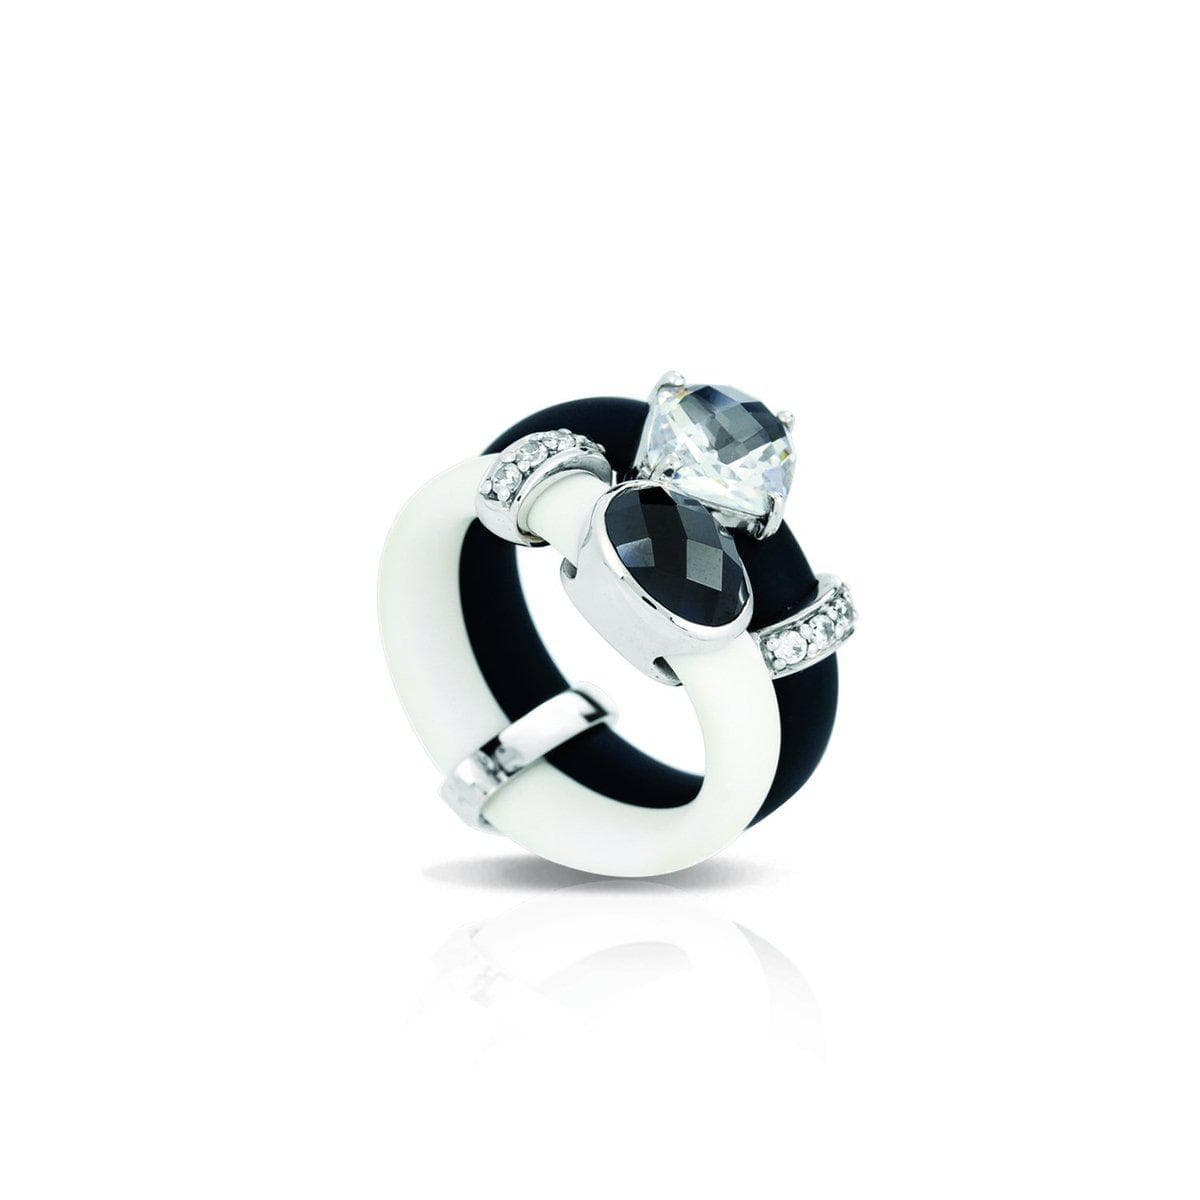 Venezia Black and White Ring-Belle Etoile-Renee Taylor Gallery